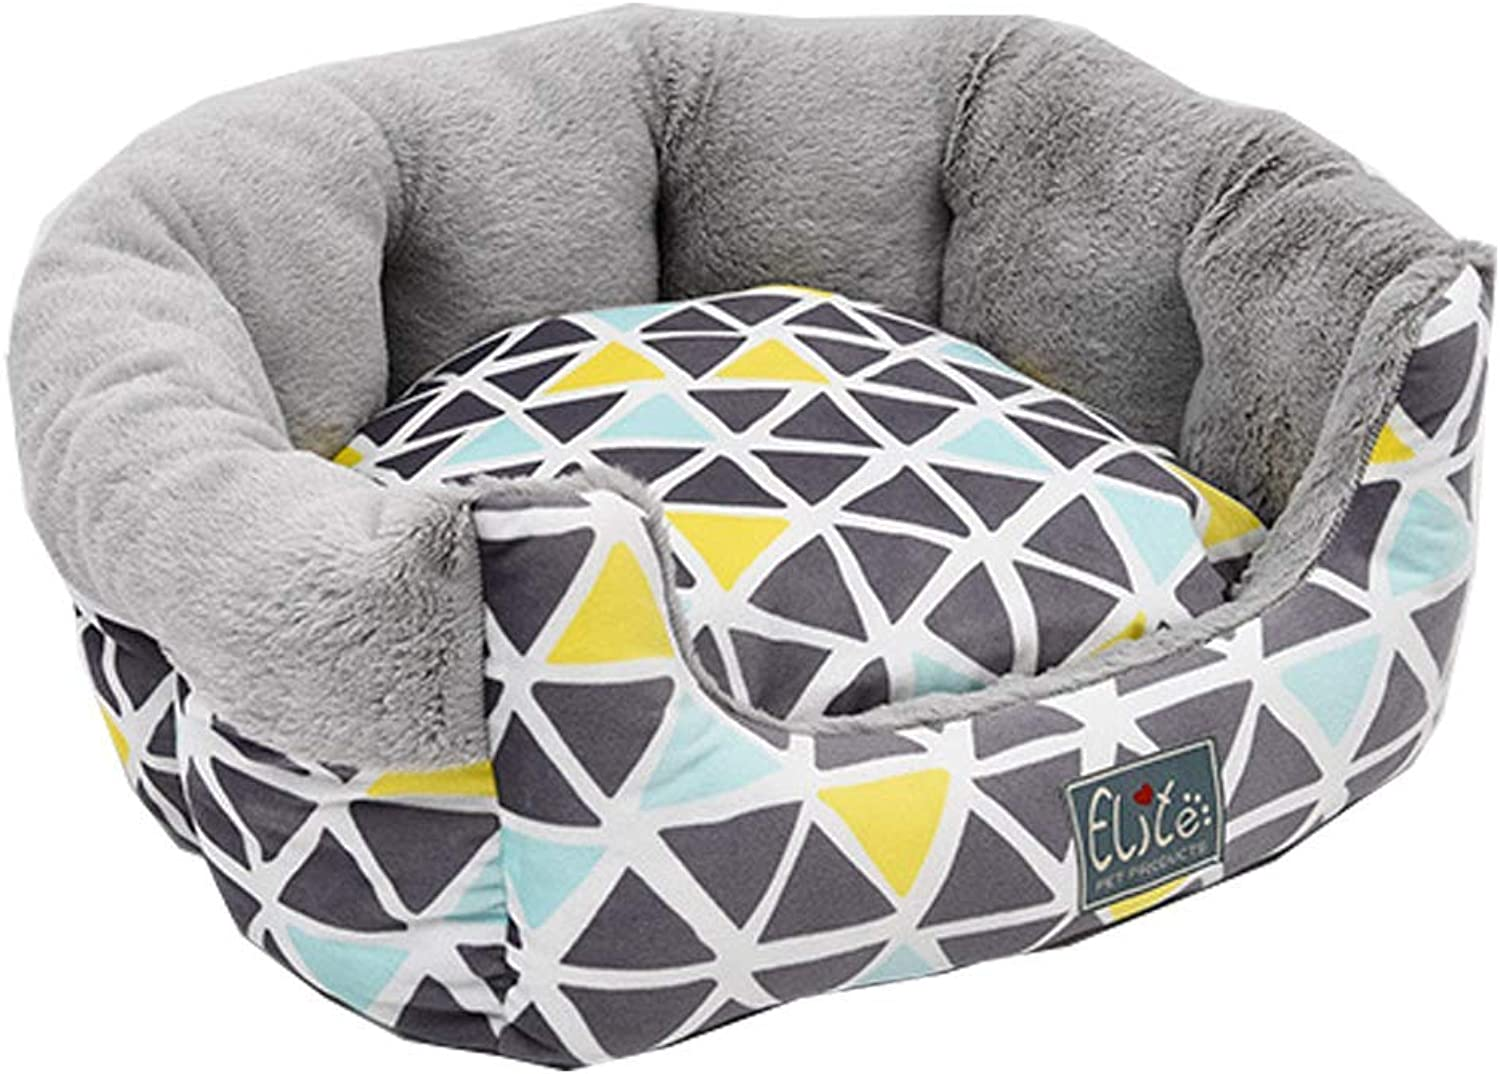 Gperw Pets Dog Cat Bed Soft Washable Comfortable Autumn and winter geometry Non Slip Cushion Pad (Size   L)